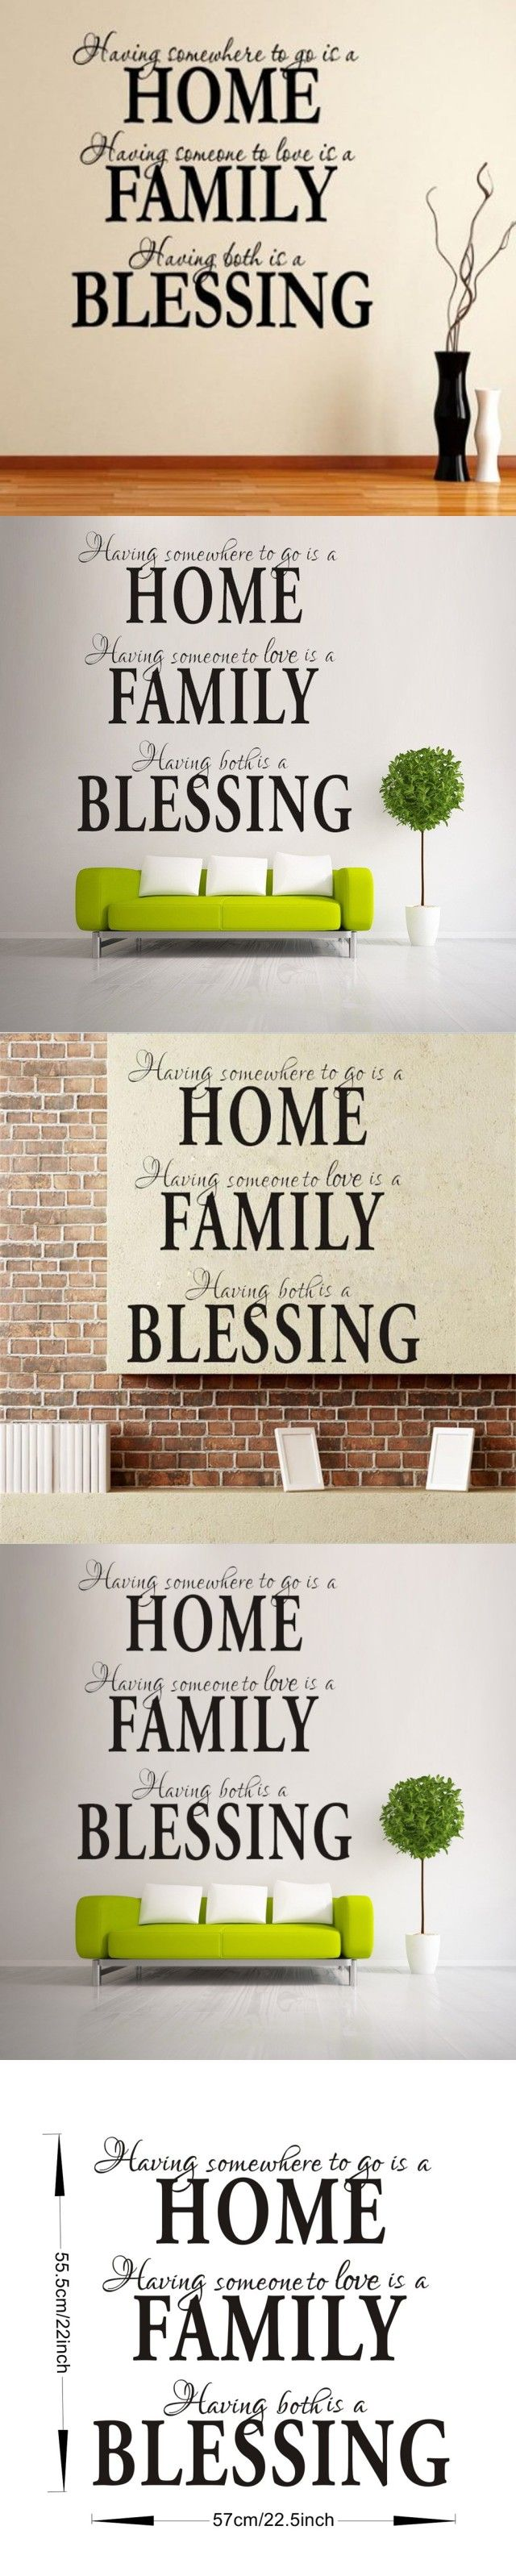 best 25 wall stickers for kids ideas on pinterest army room home family blessing inspirational quote wall sticker for kids room living room bedroom home decor 3d vinyl wall decal mural